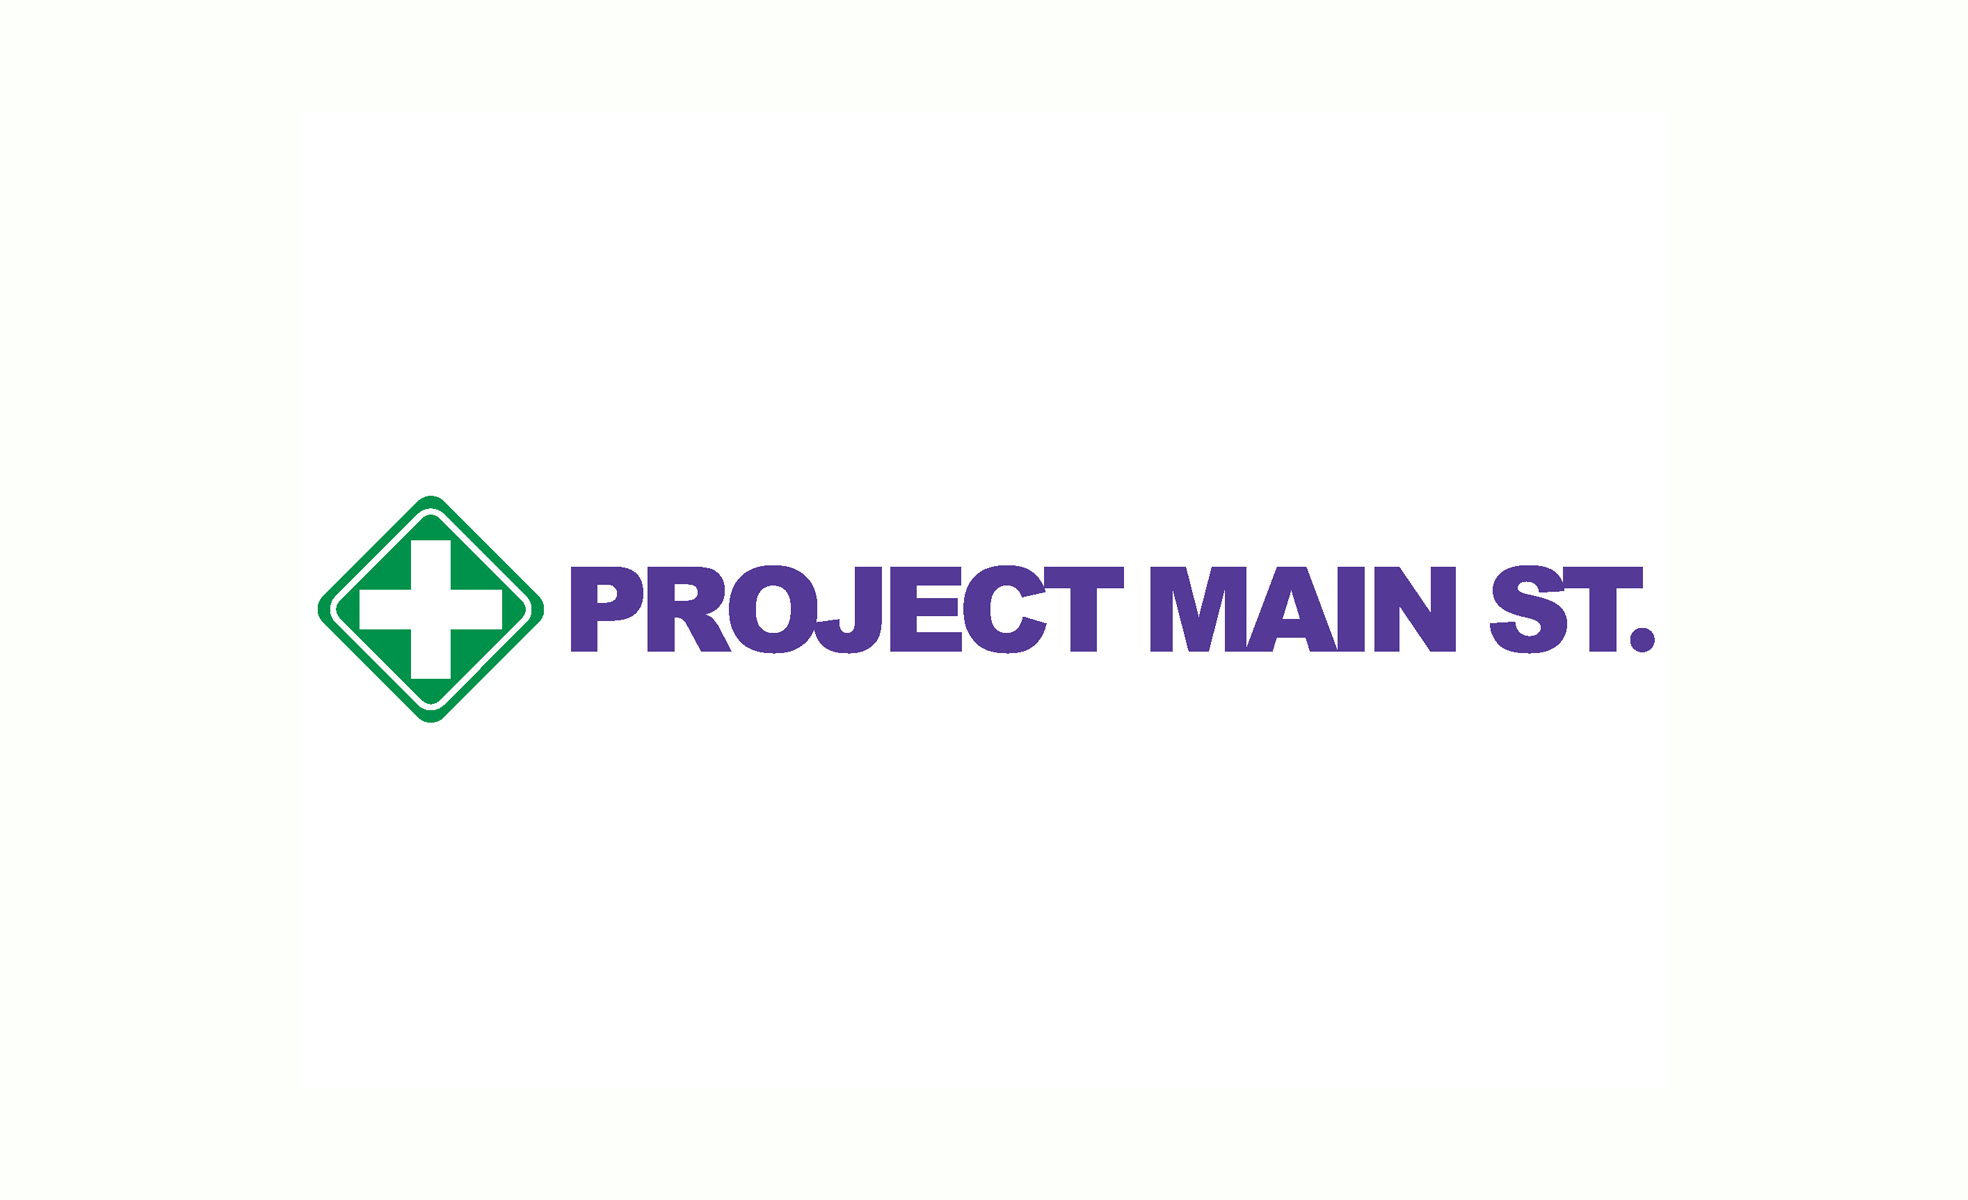 Project Main ST